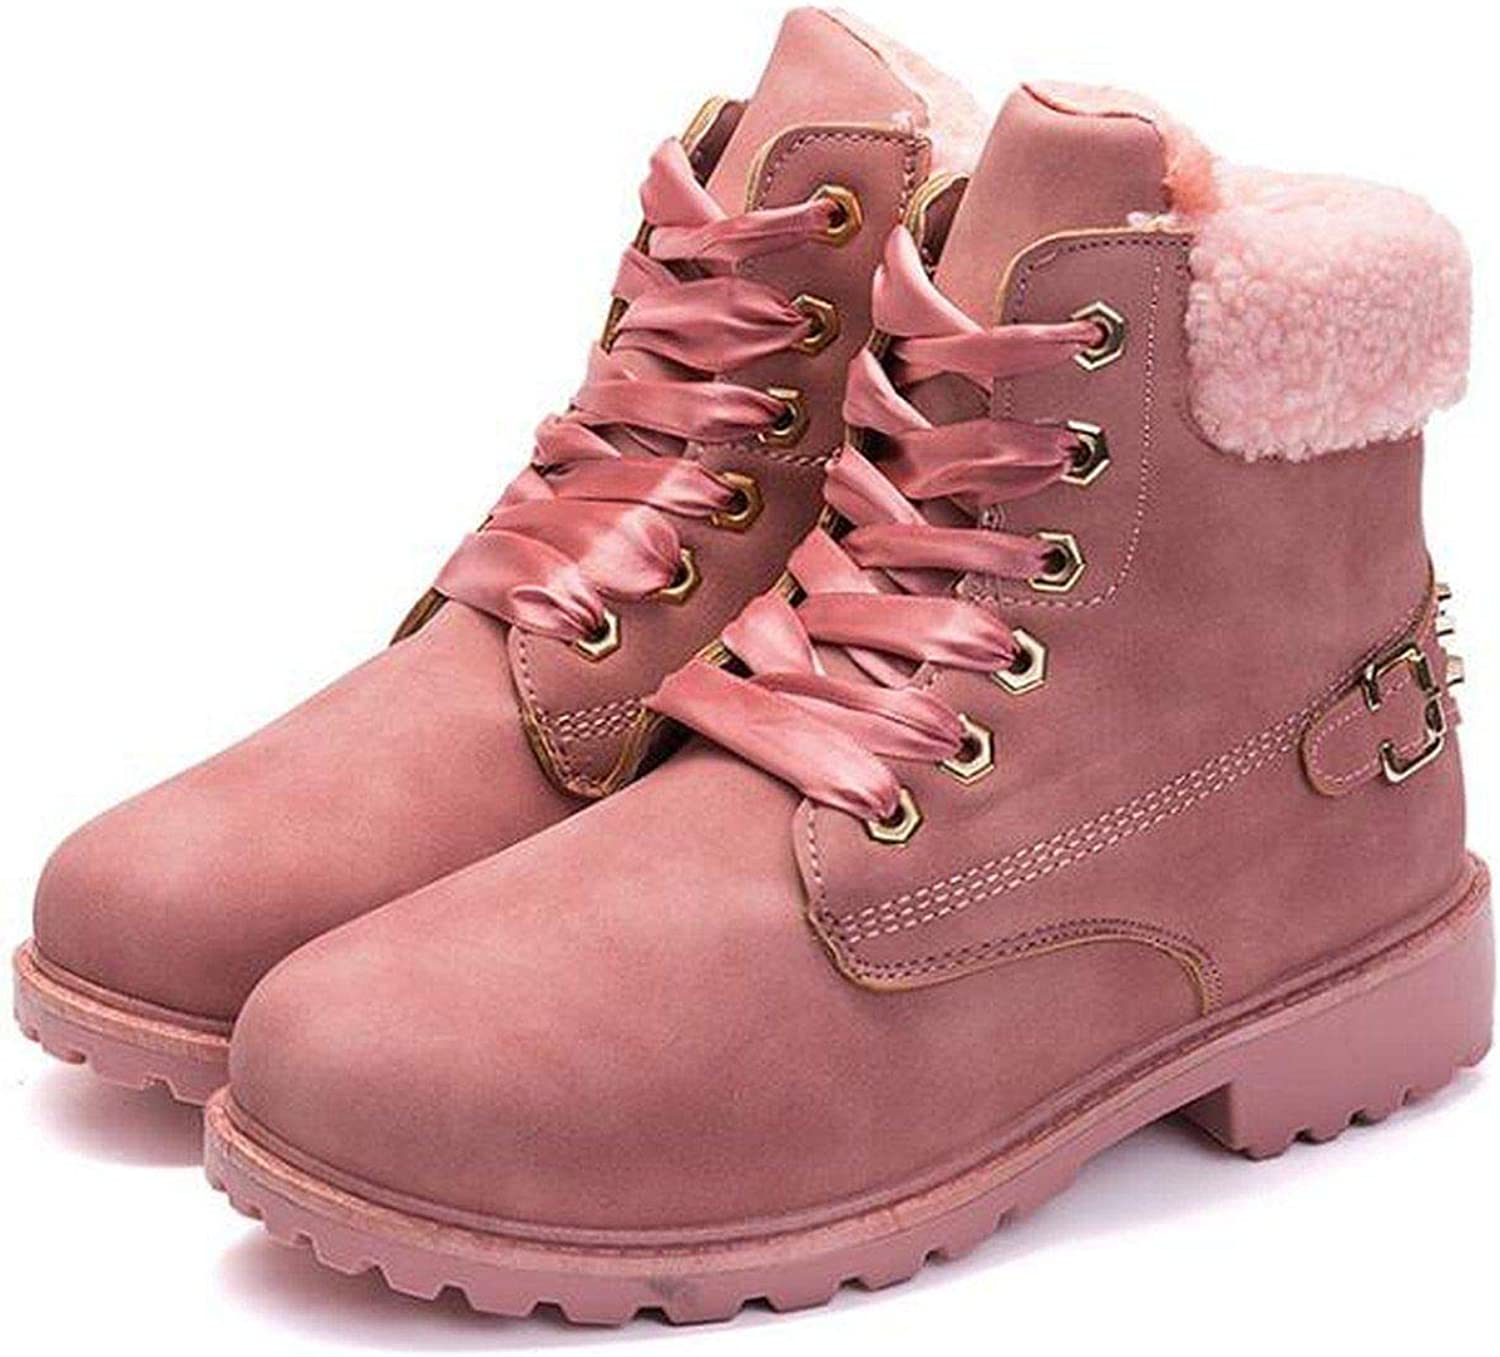 Summer-lavender Women Boots Lace-up Rivet Casual Ankle Boots Round Toe Winter Snow Boots Warm British Style